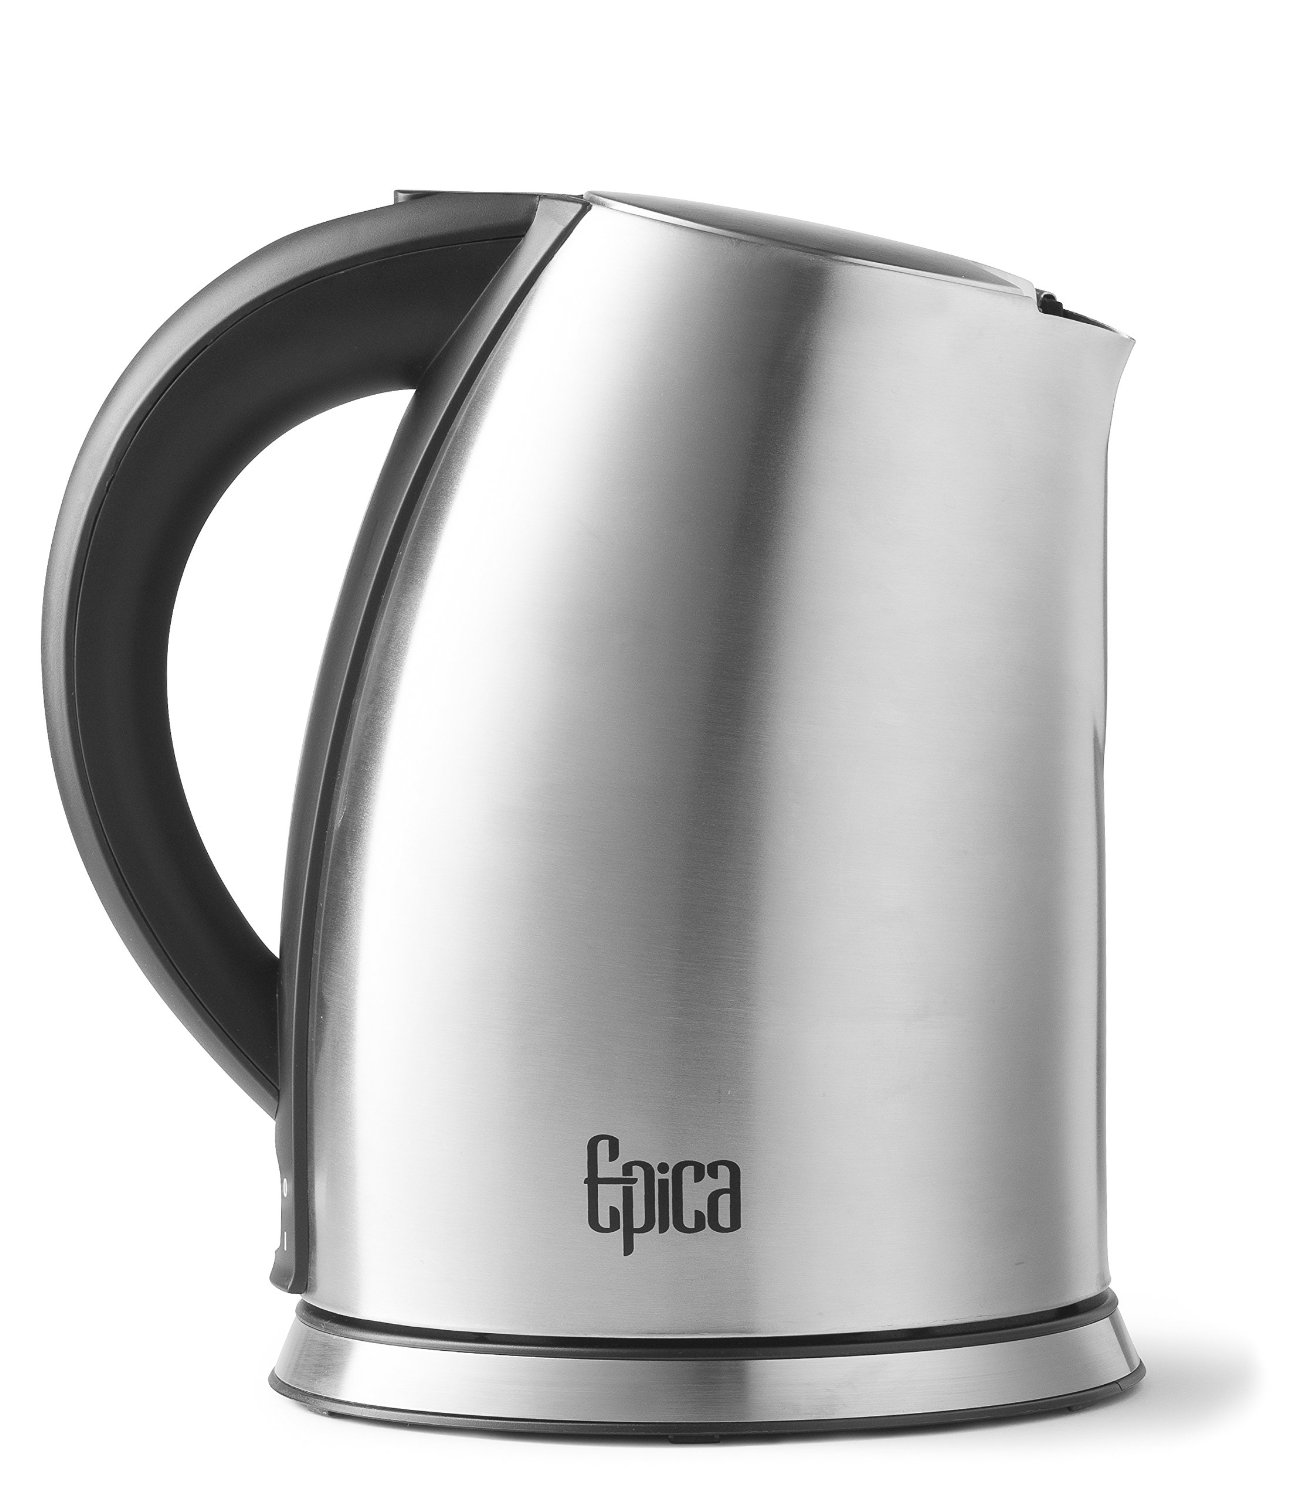 Epica Cordless Electric Kettle